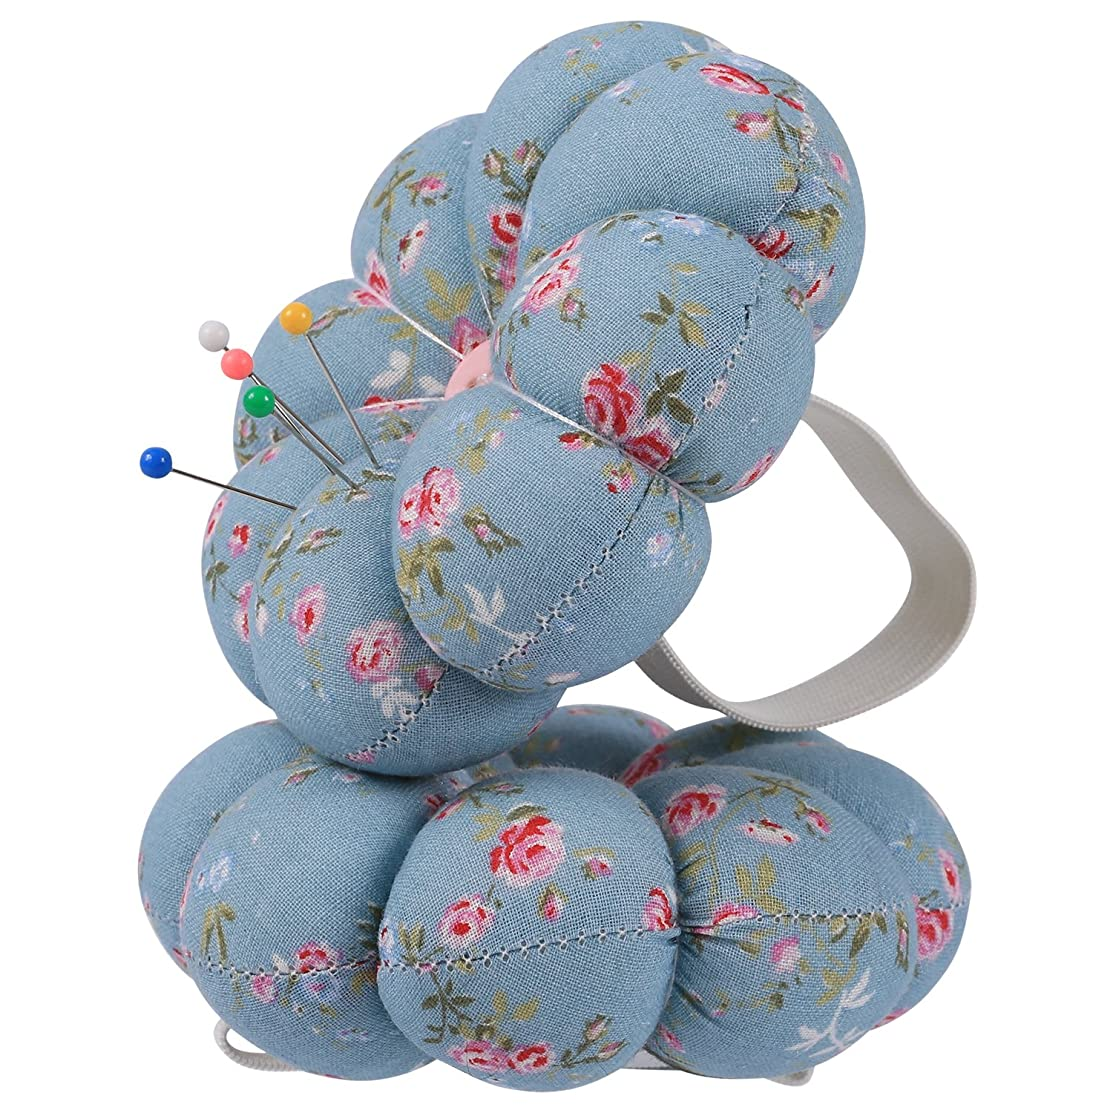 NEOVIVA Pincushions for Sewing with Wristband, Cute Wrist Pin Cushion for Daily Needlework, Style Pumpkin, Pack of 2, Floral Blue Ocean